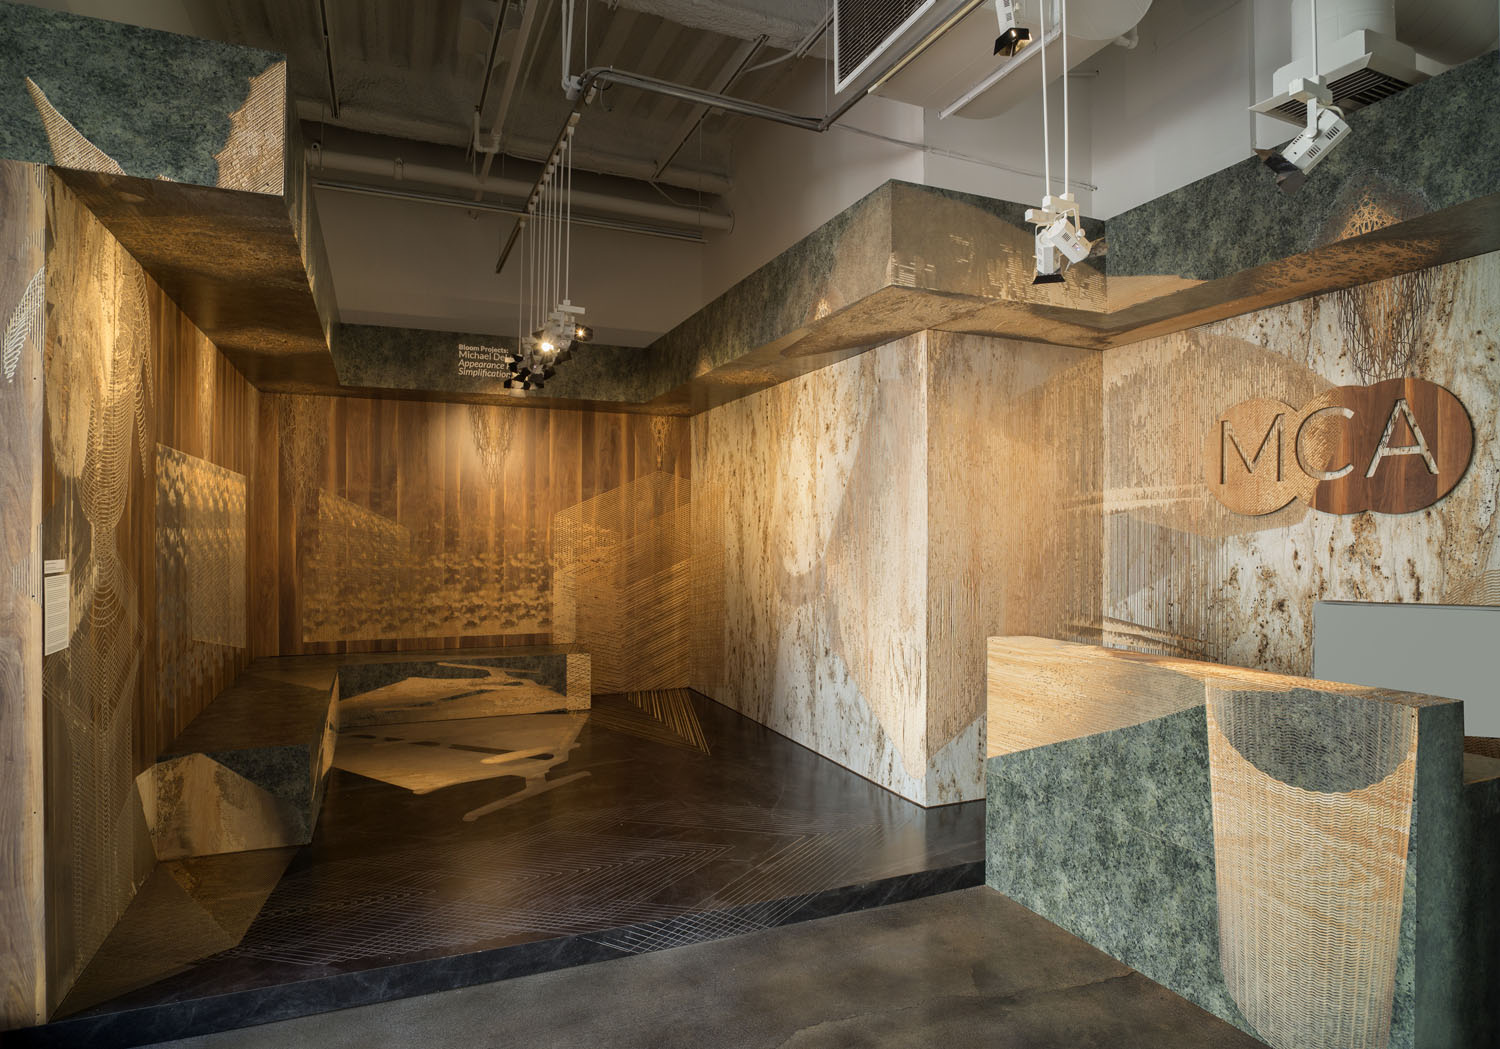 Michael DeLucia's Appearance Preserving Simplification installation